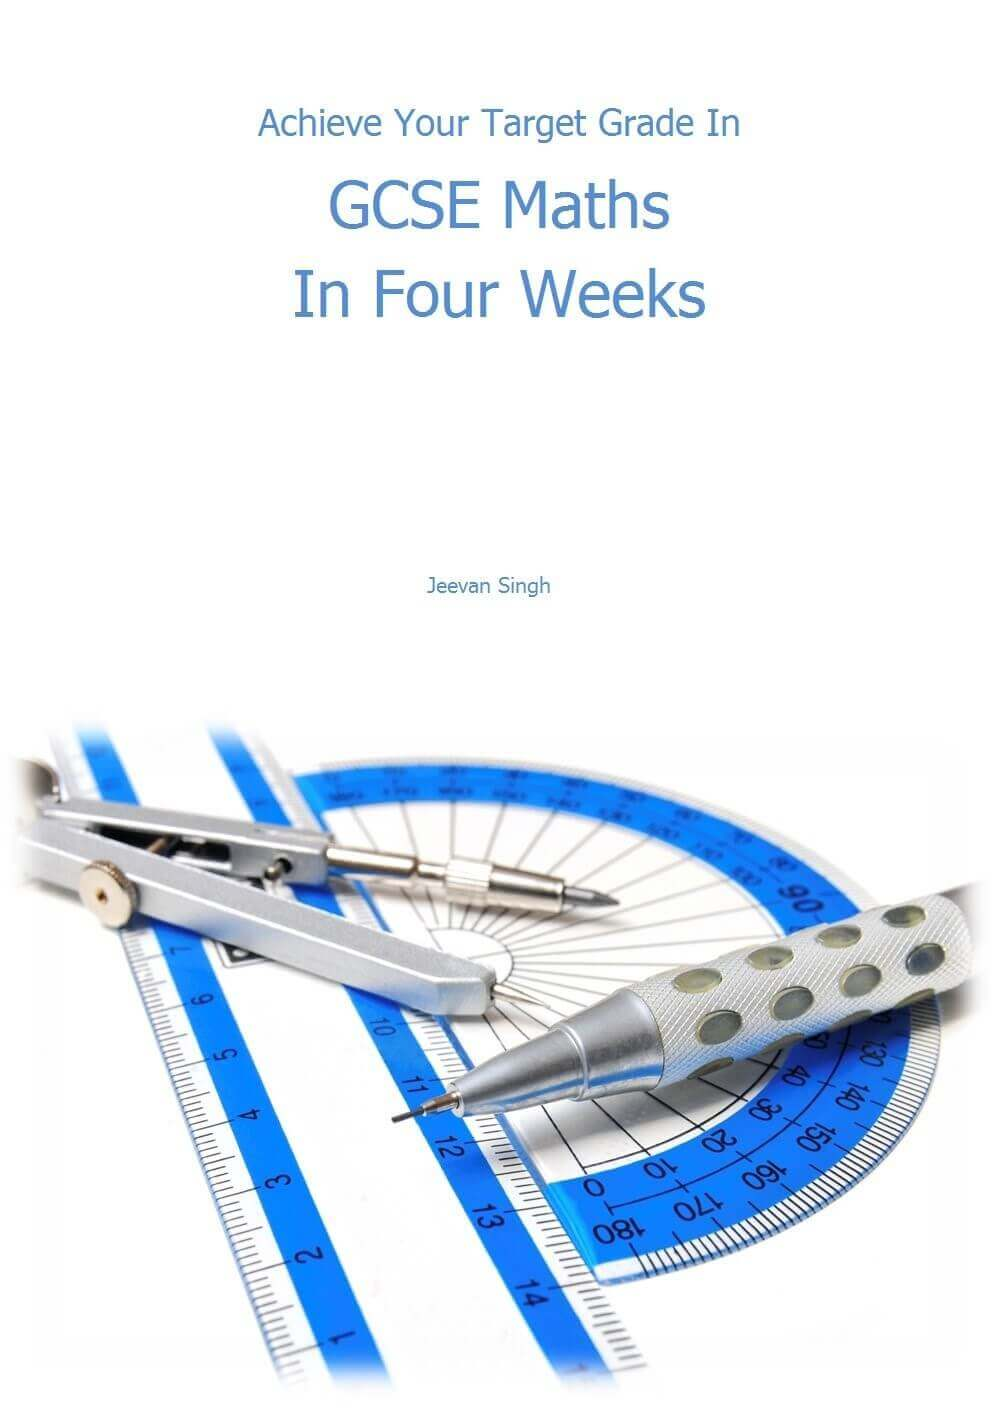 achieve your target grade om GCSE maths in four weeks